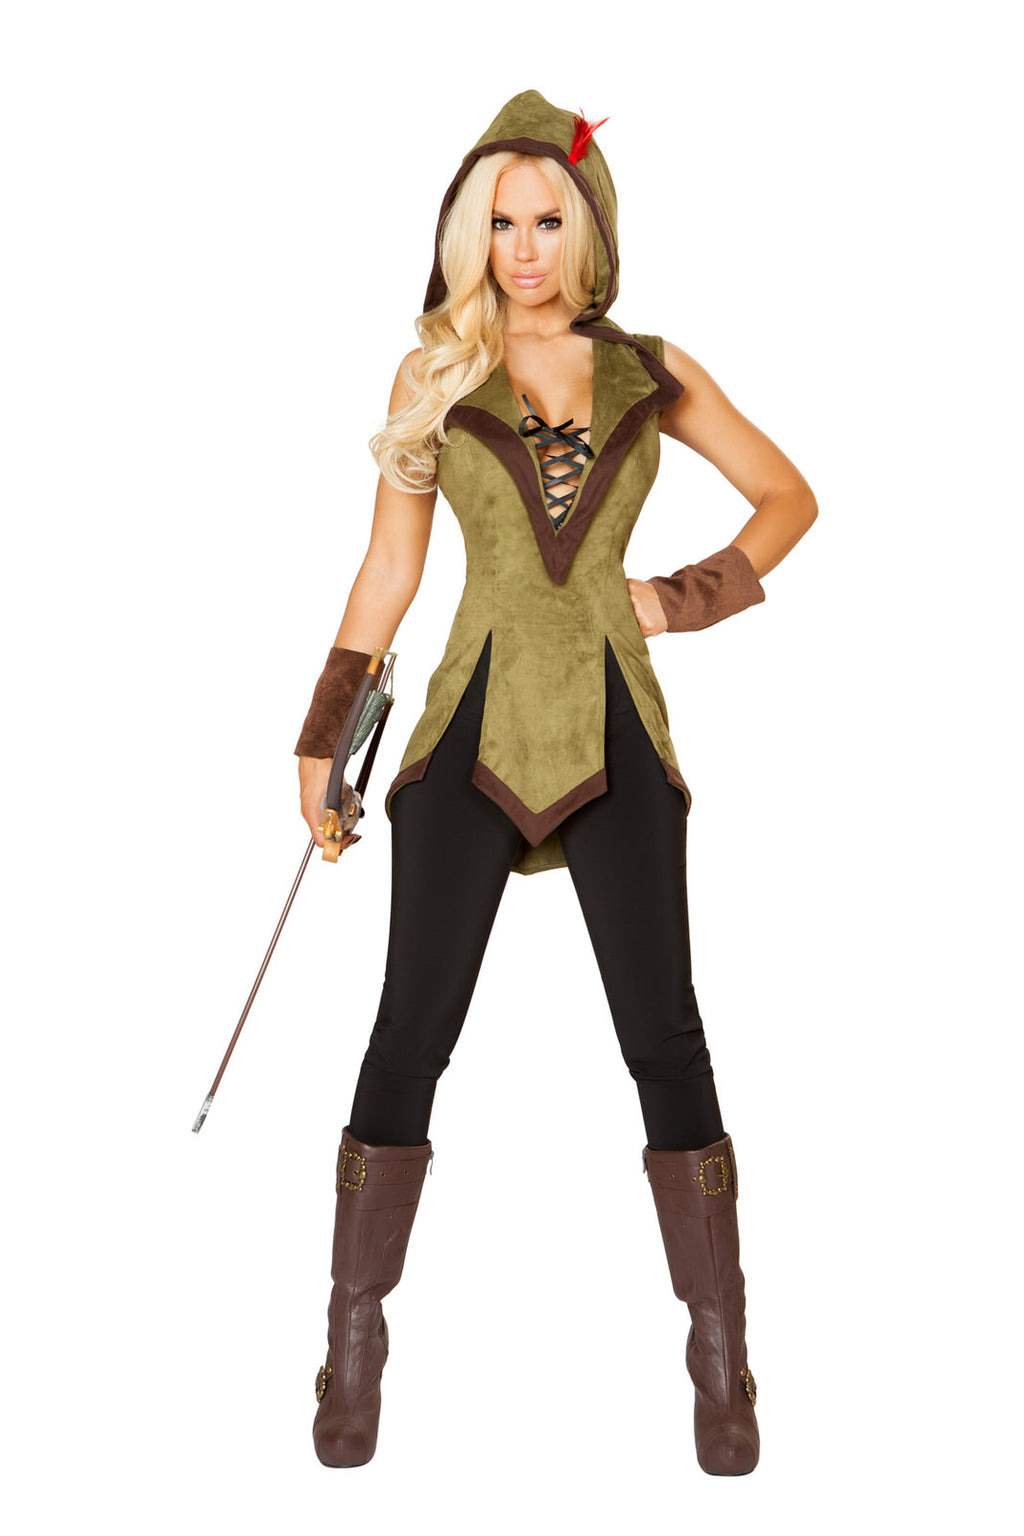 2-PC-Heroic-Archer-Outlaw-Green-Lace-Up-Hooded-Tunic-w/-Wrist-Cuffs-Party-Costume